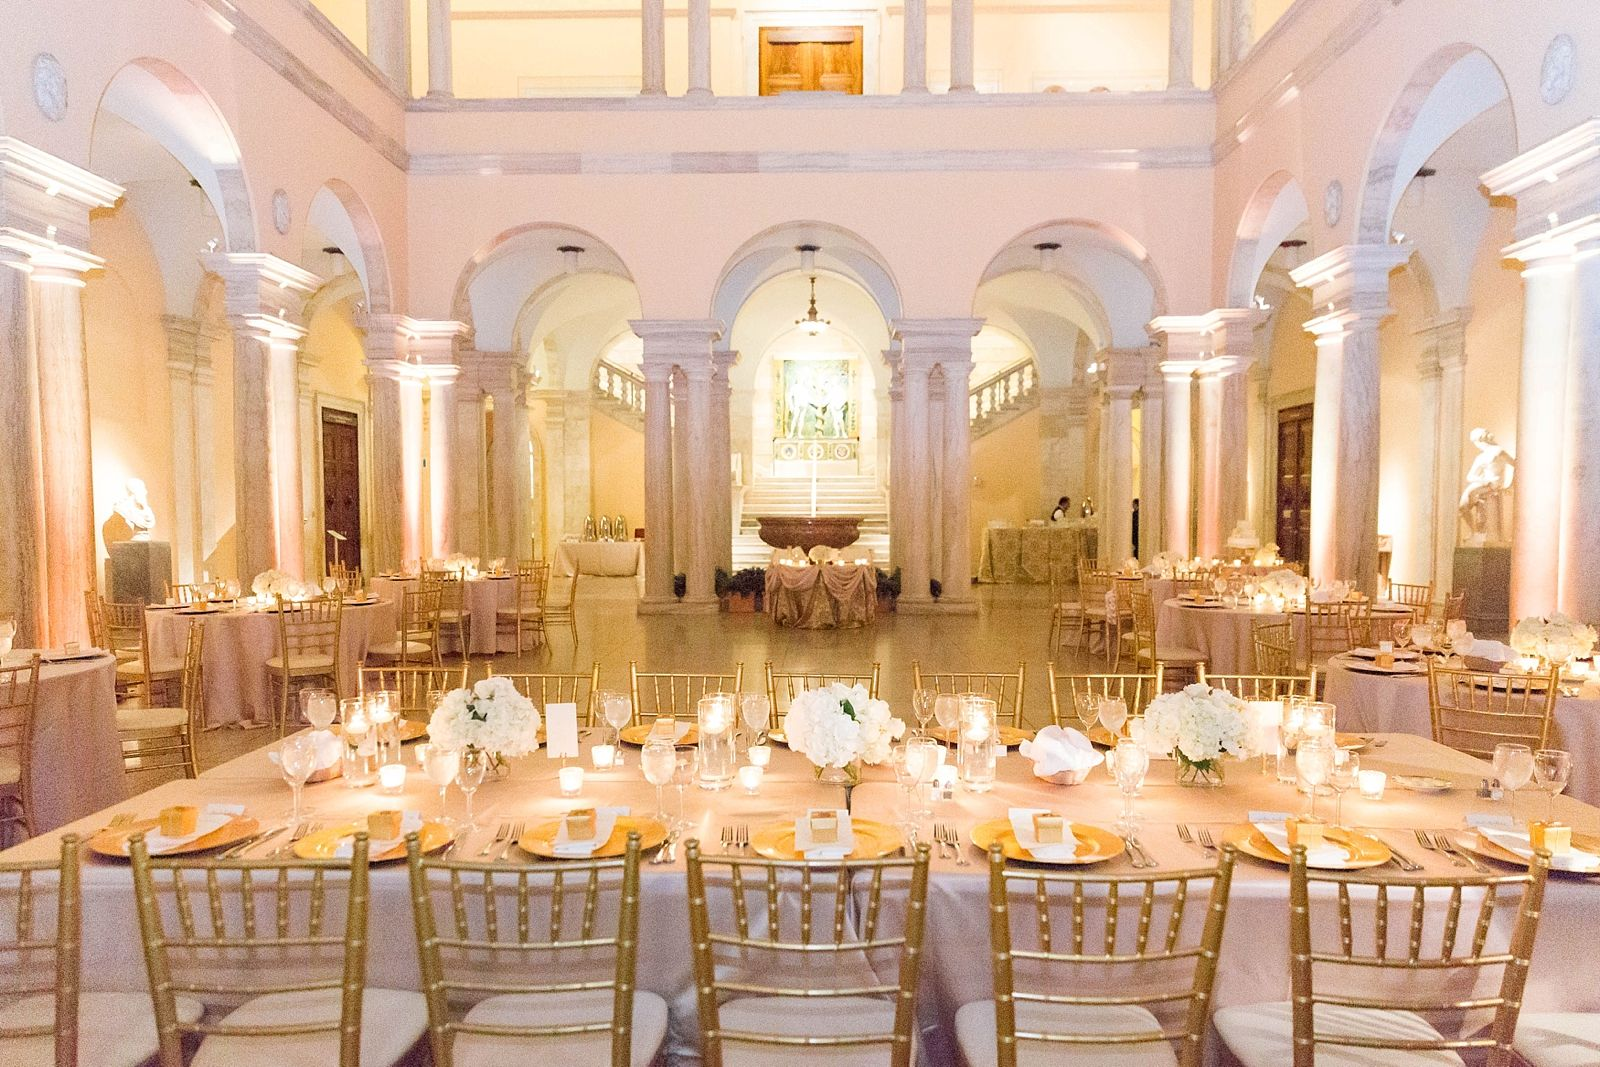 Becca Chris Jillian Michelle Photography Catering By Uptown Walters Art Museum